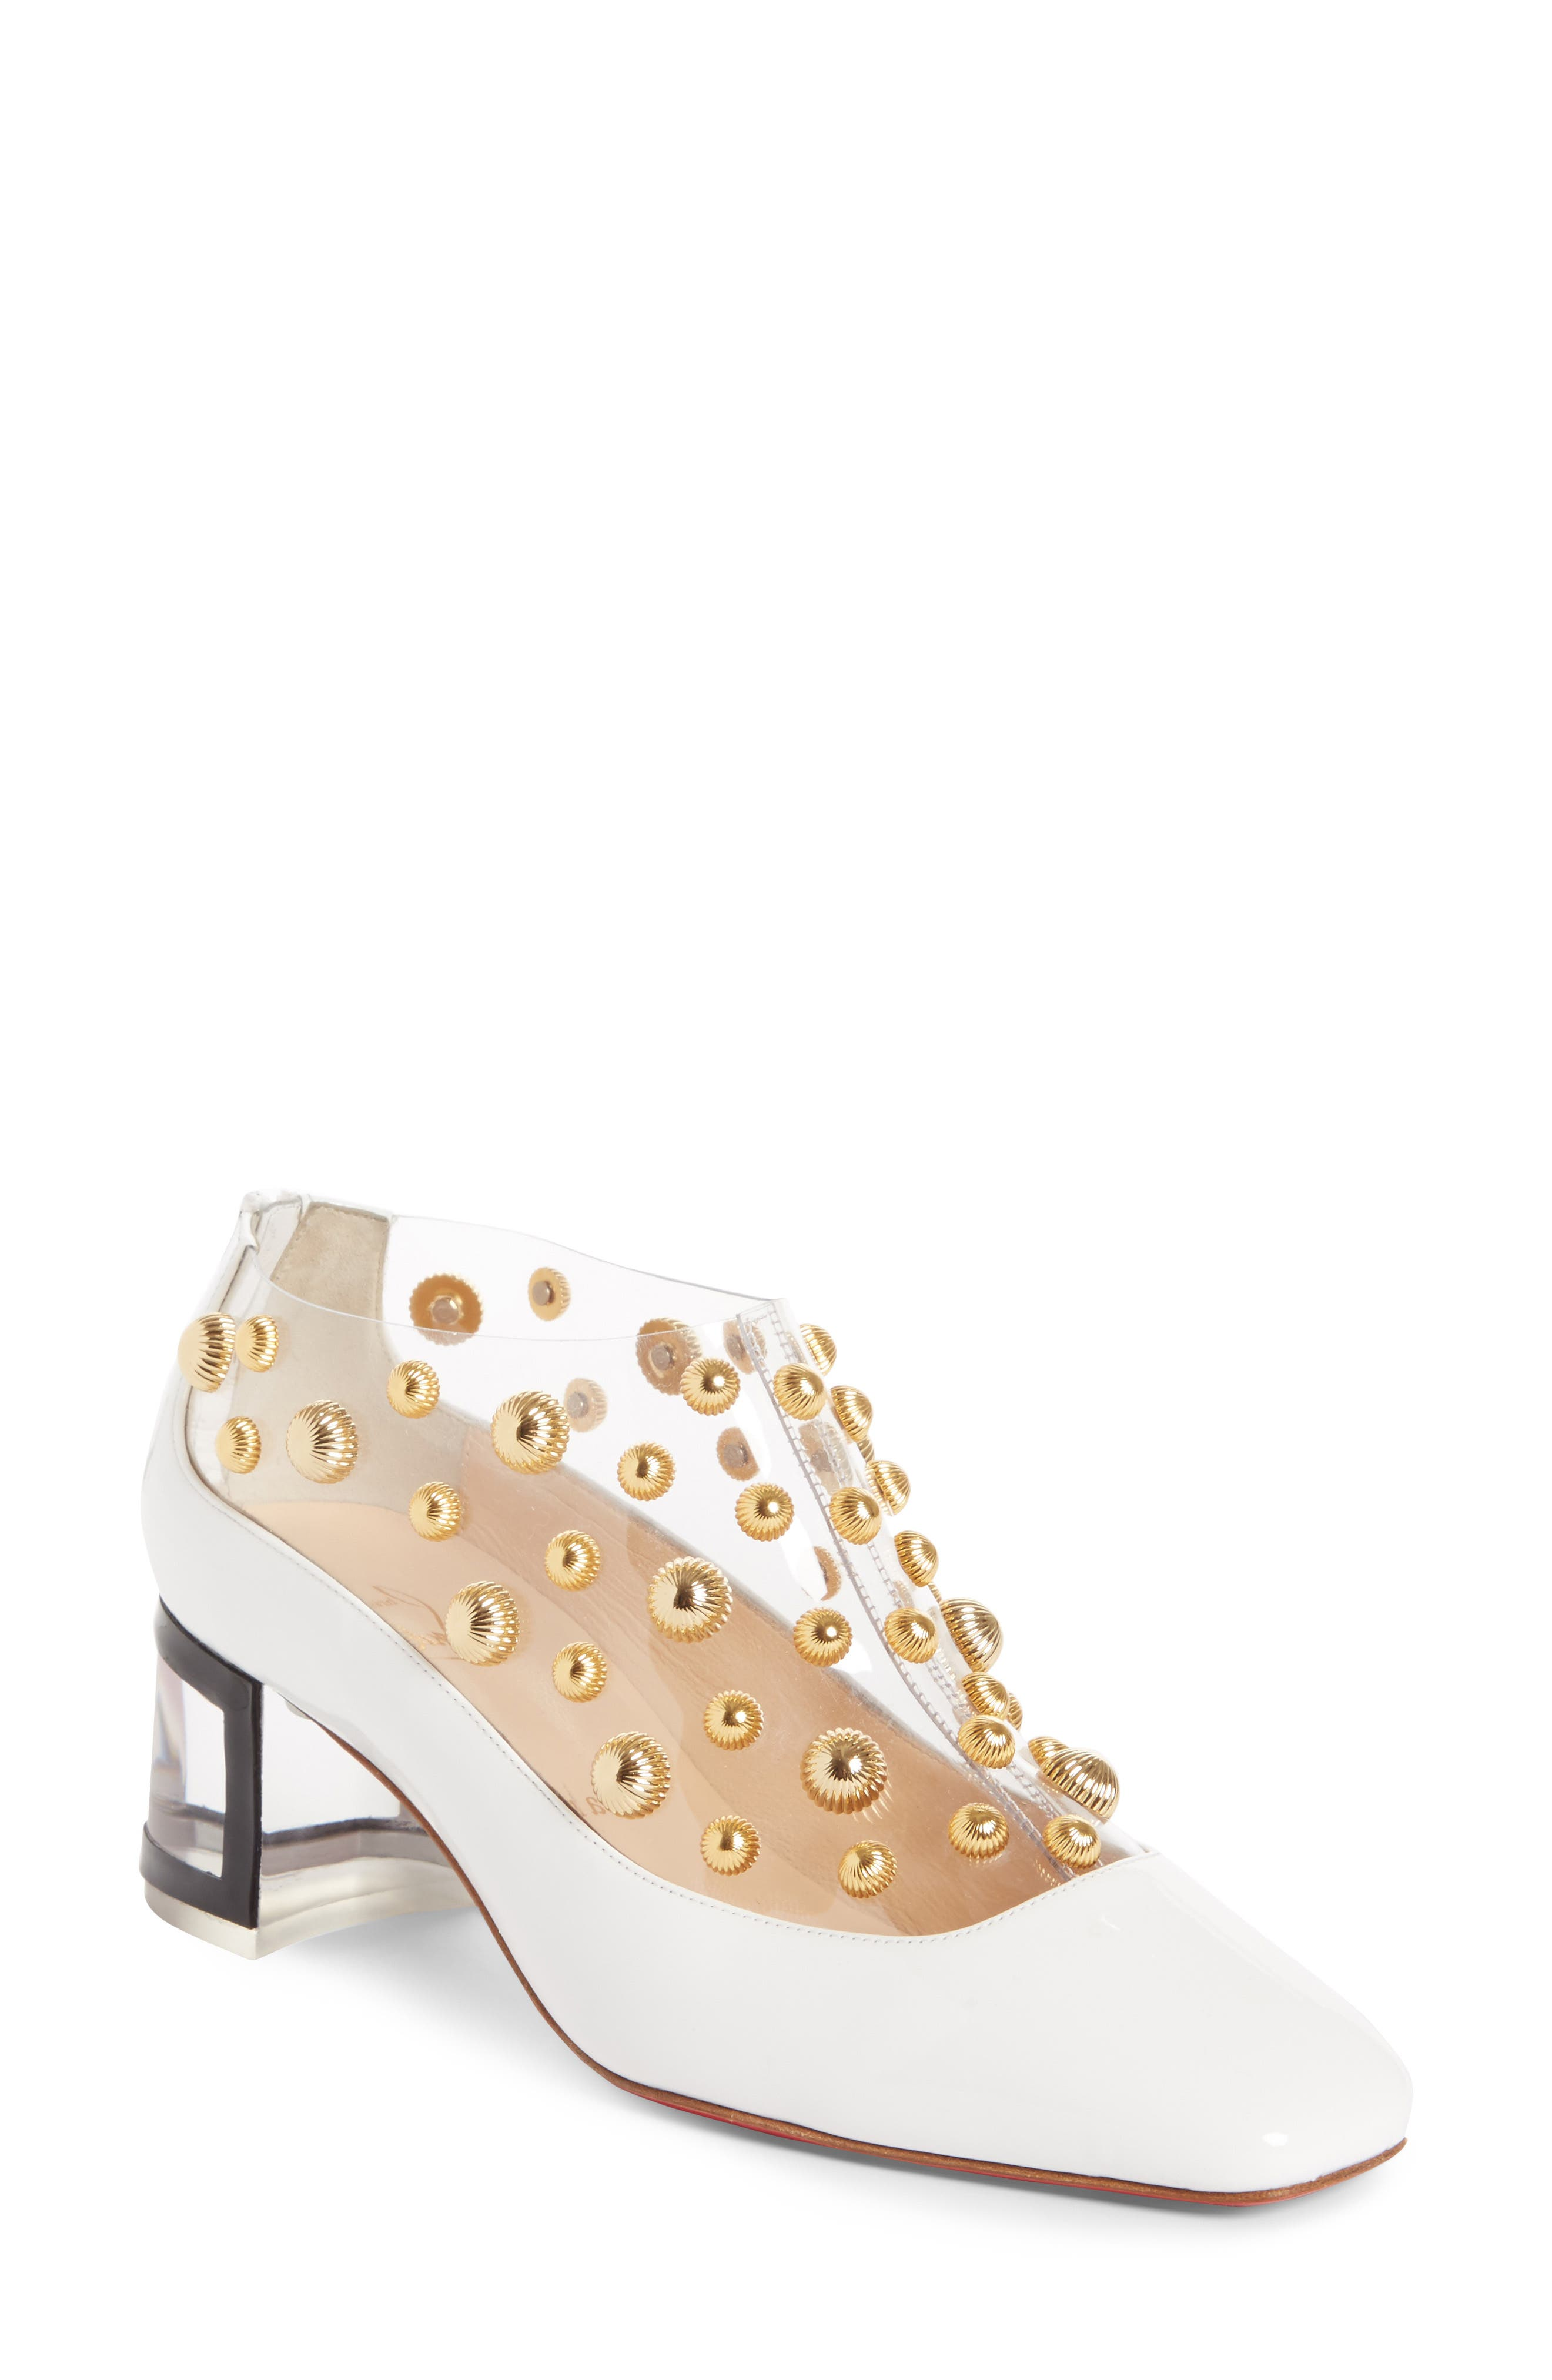 Alternate Image 1 Selected - Christian Louboutin Studded Clear Pump (Women)